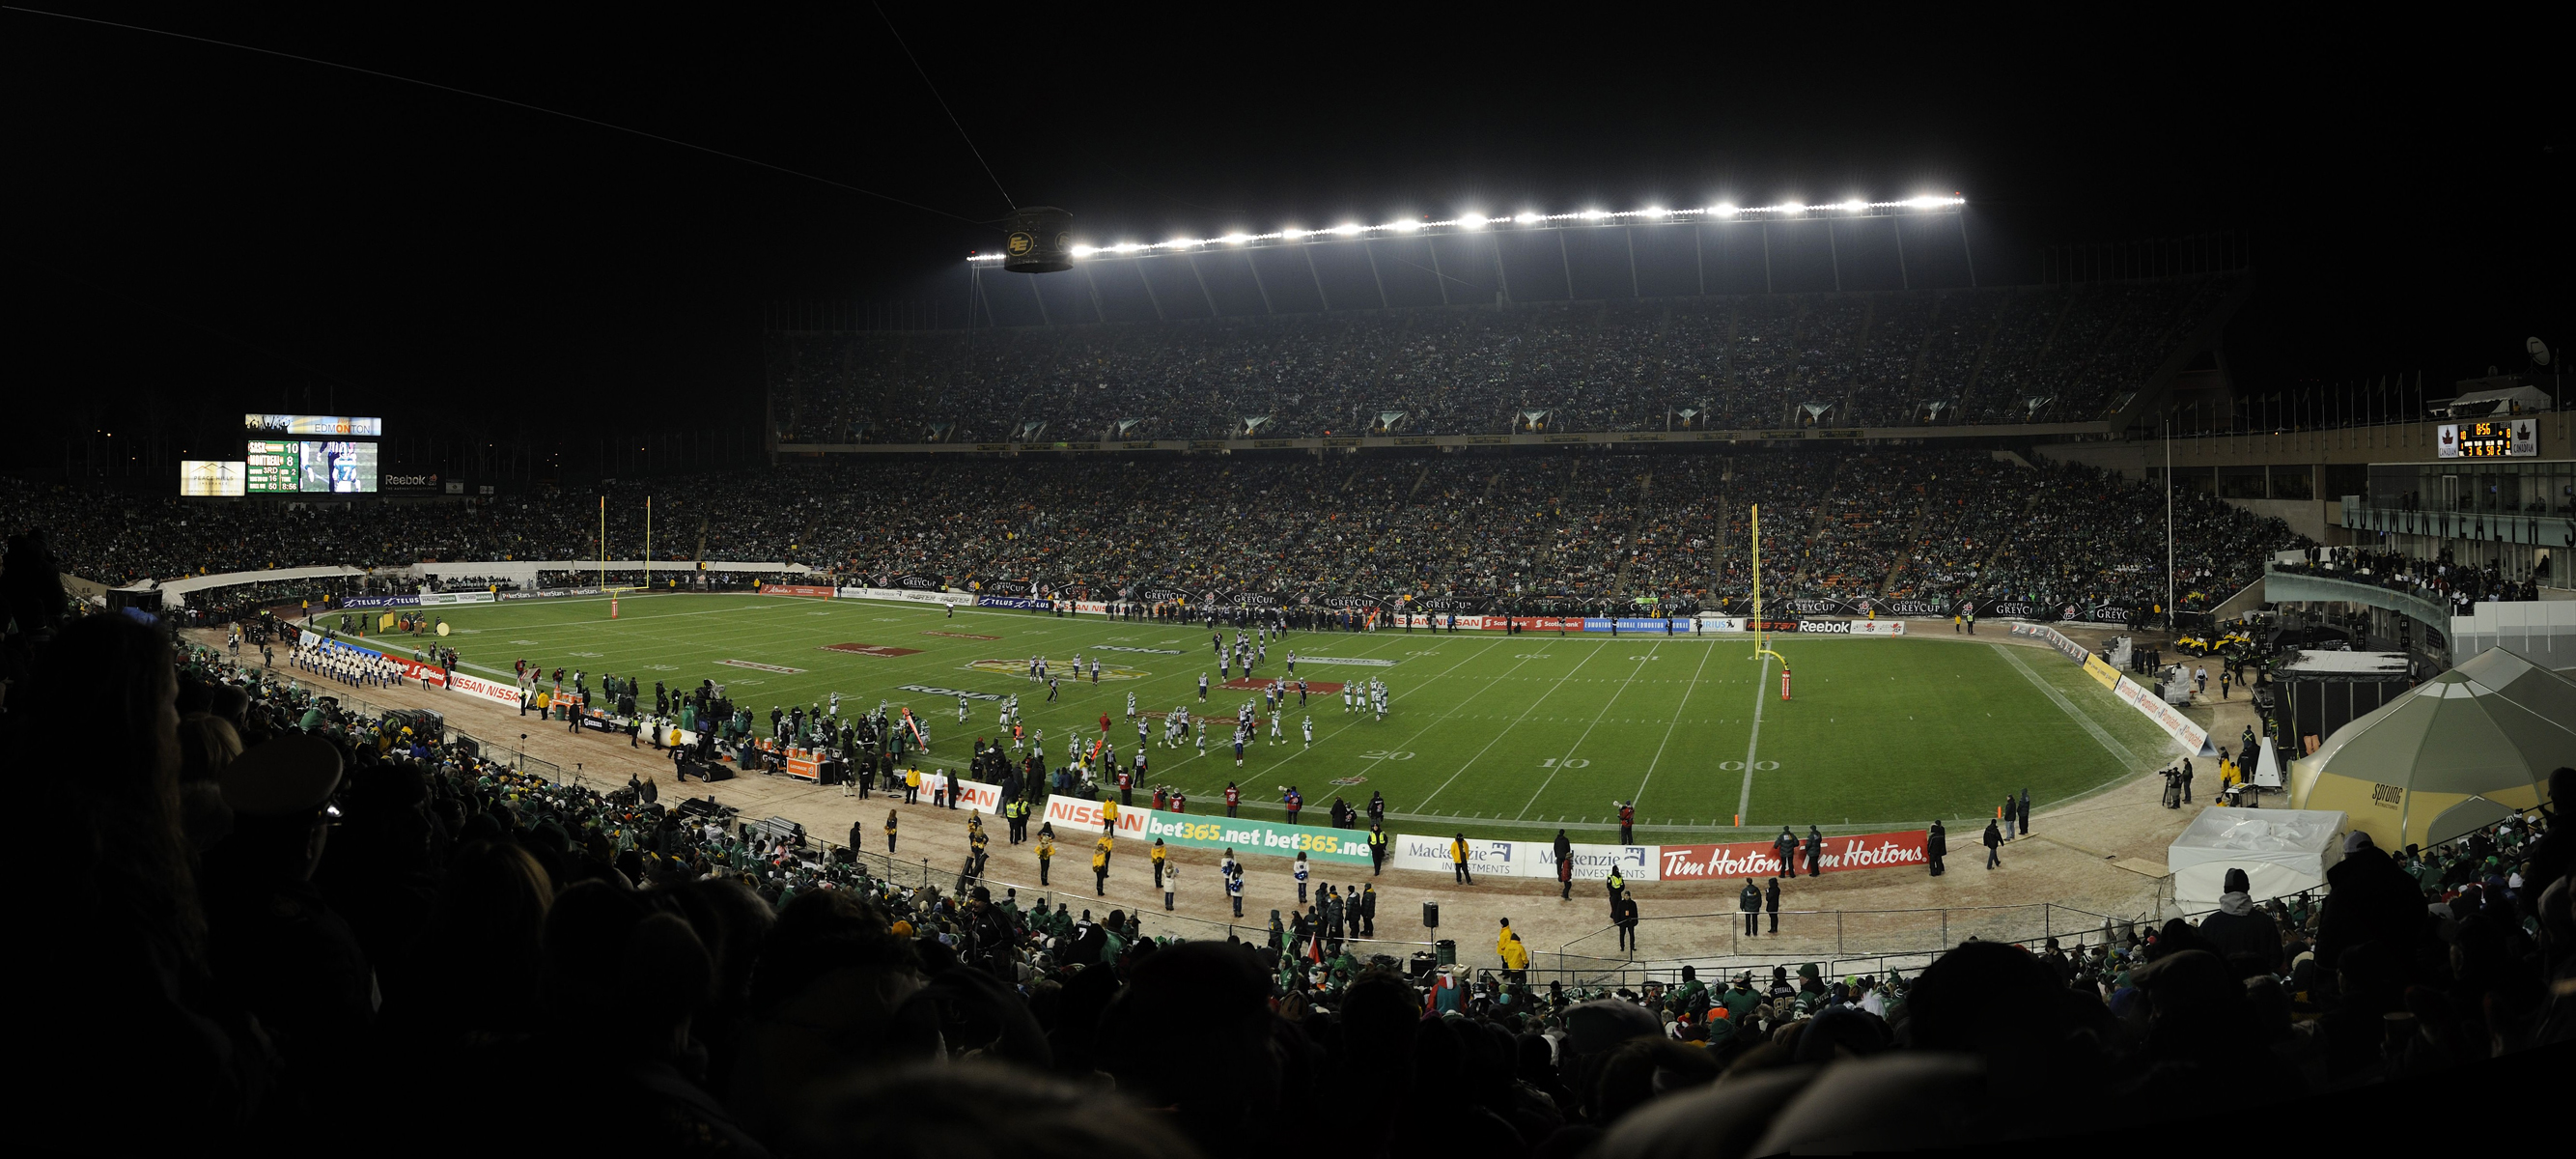 The 98th Grey Cup Championship was held at the Commonwealth Stadium in Edmonton, Alberta on Saturday, November 28, 2010.